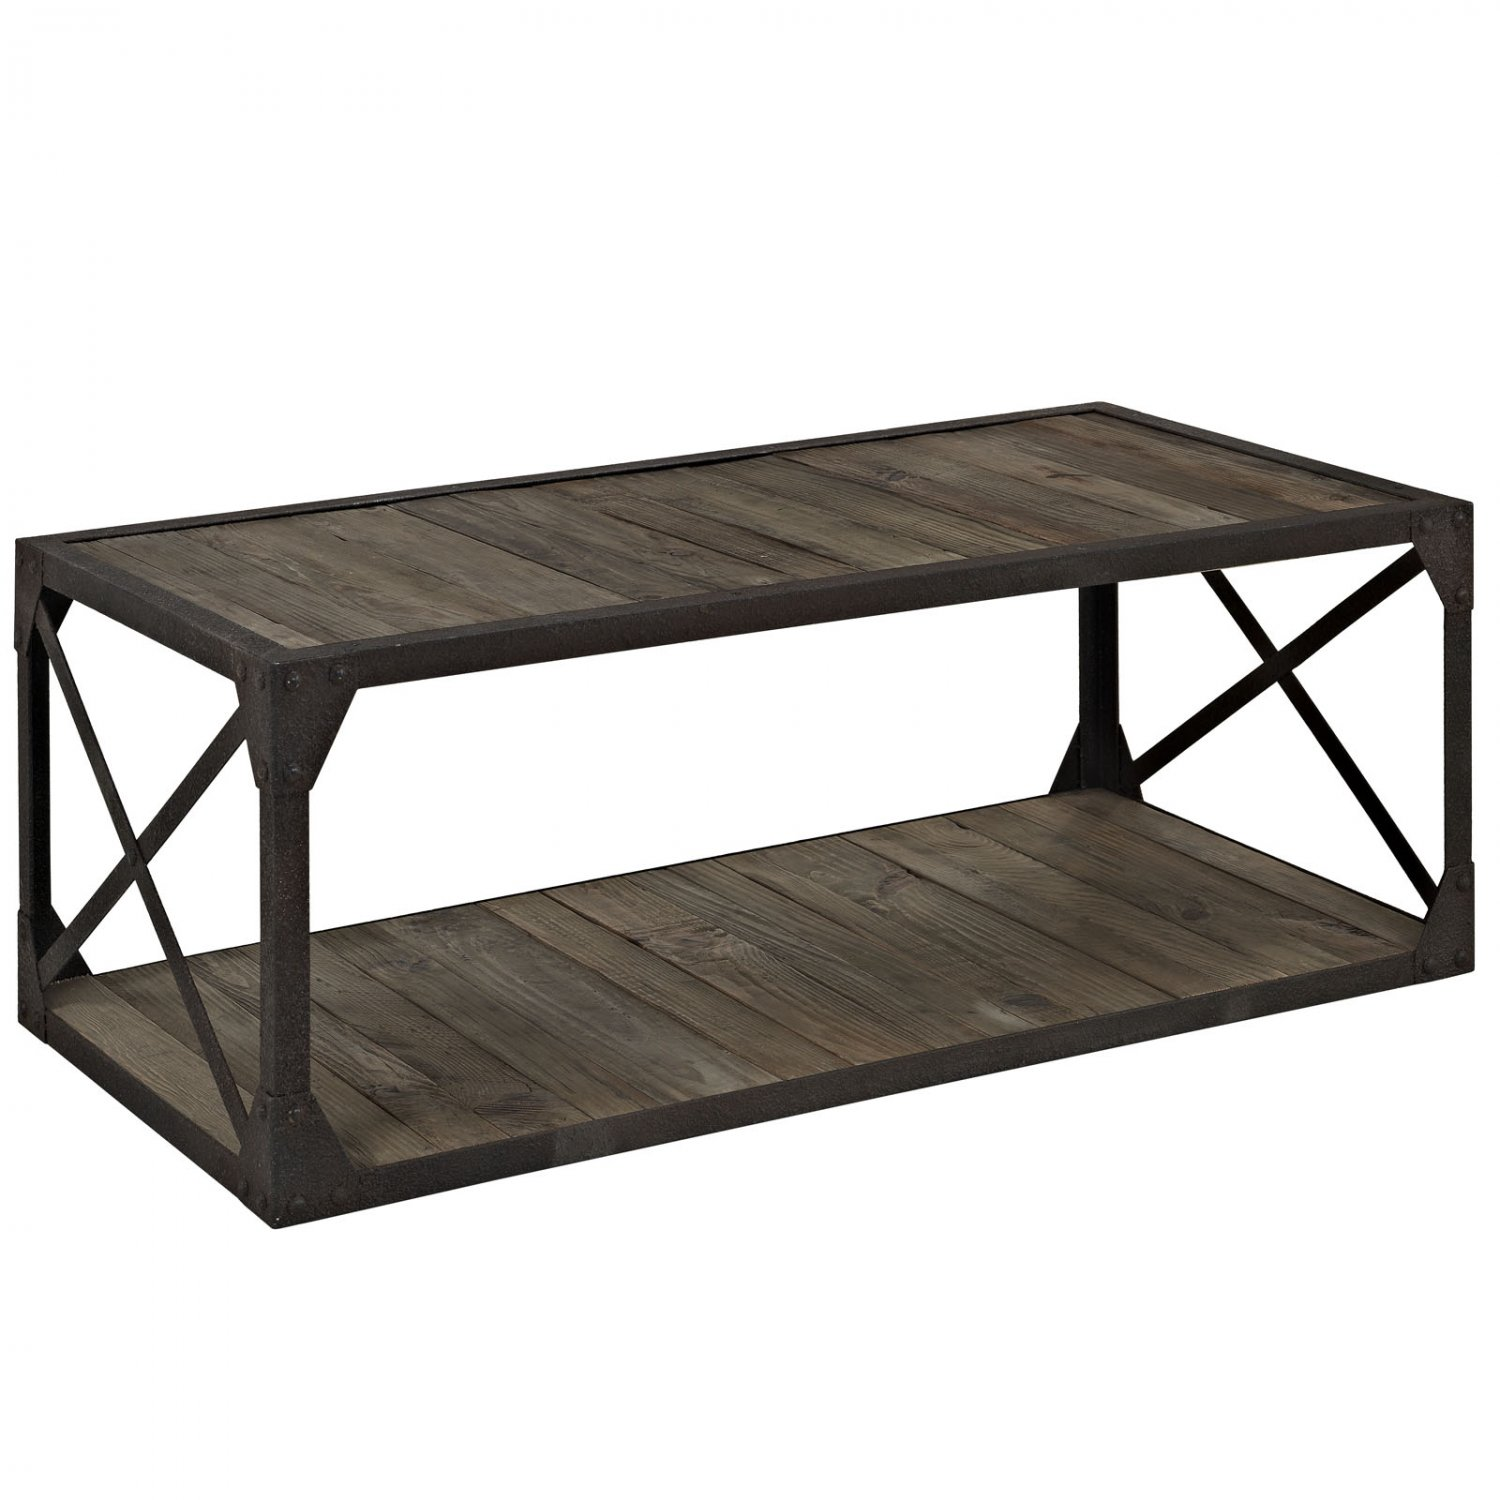 Mathew industrial style coffee table for Coffee tables industrial